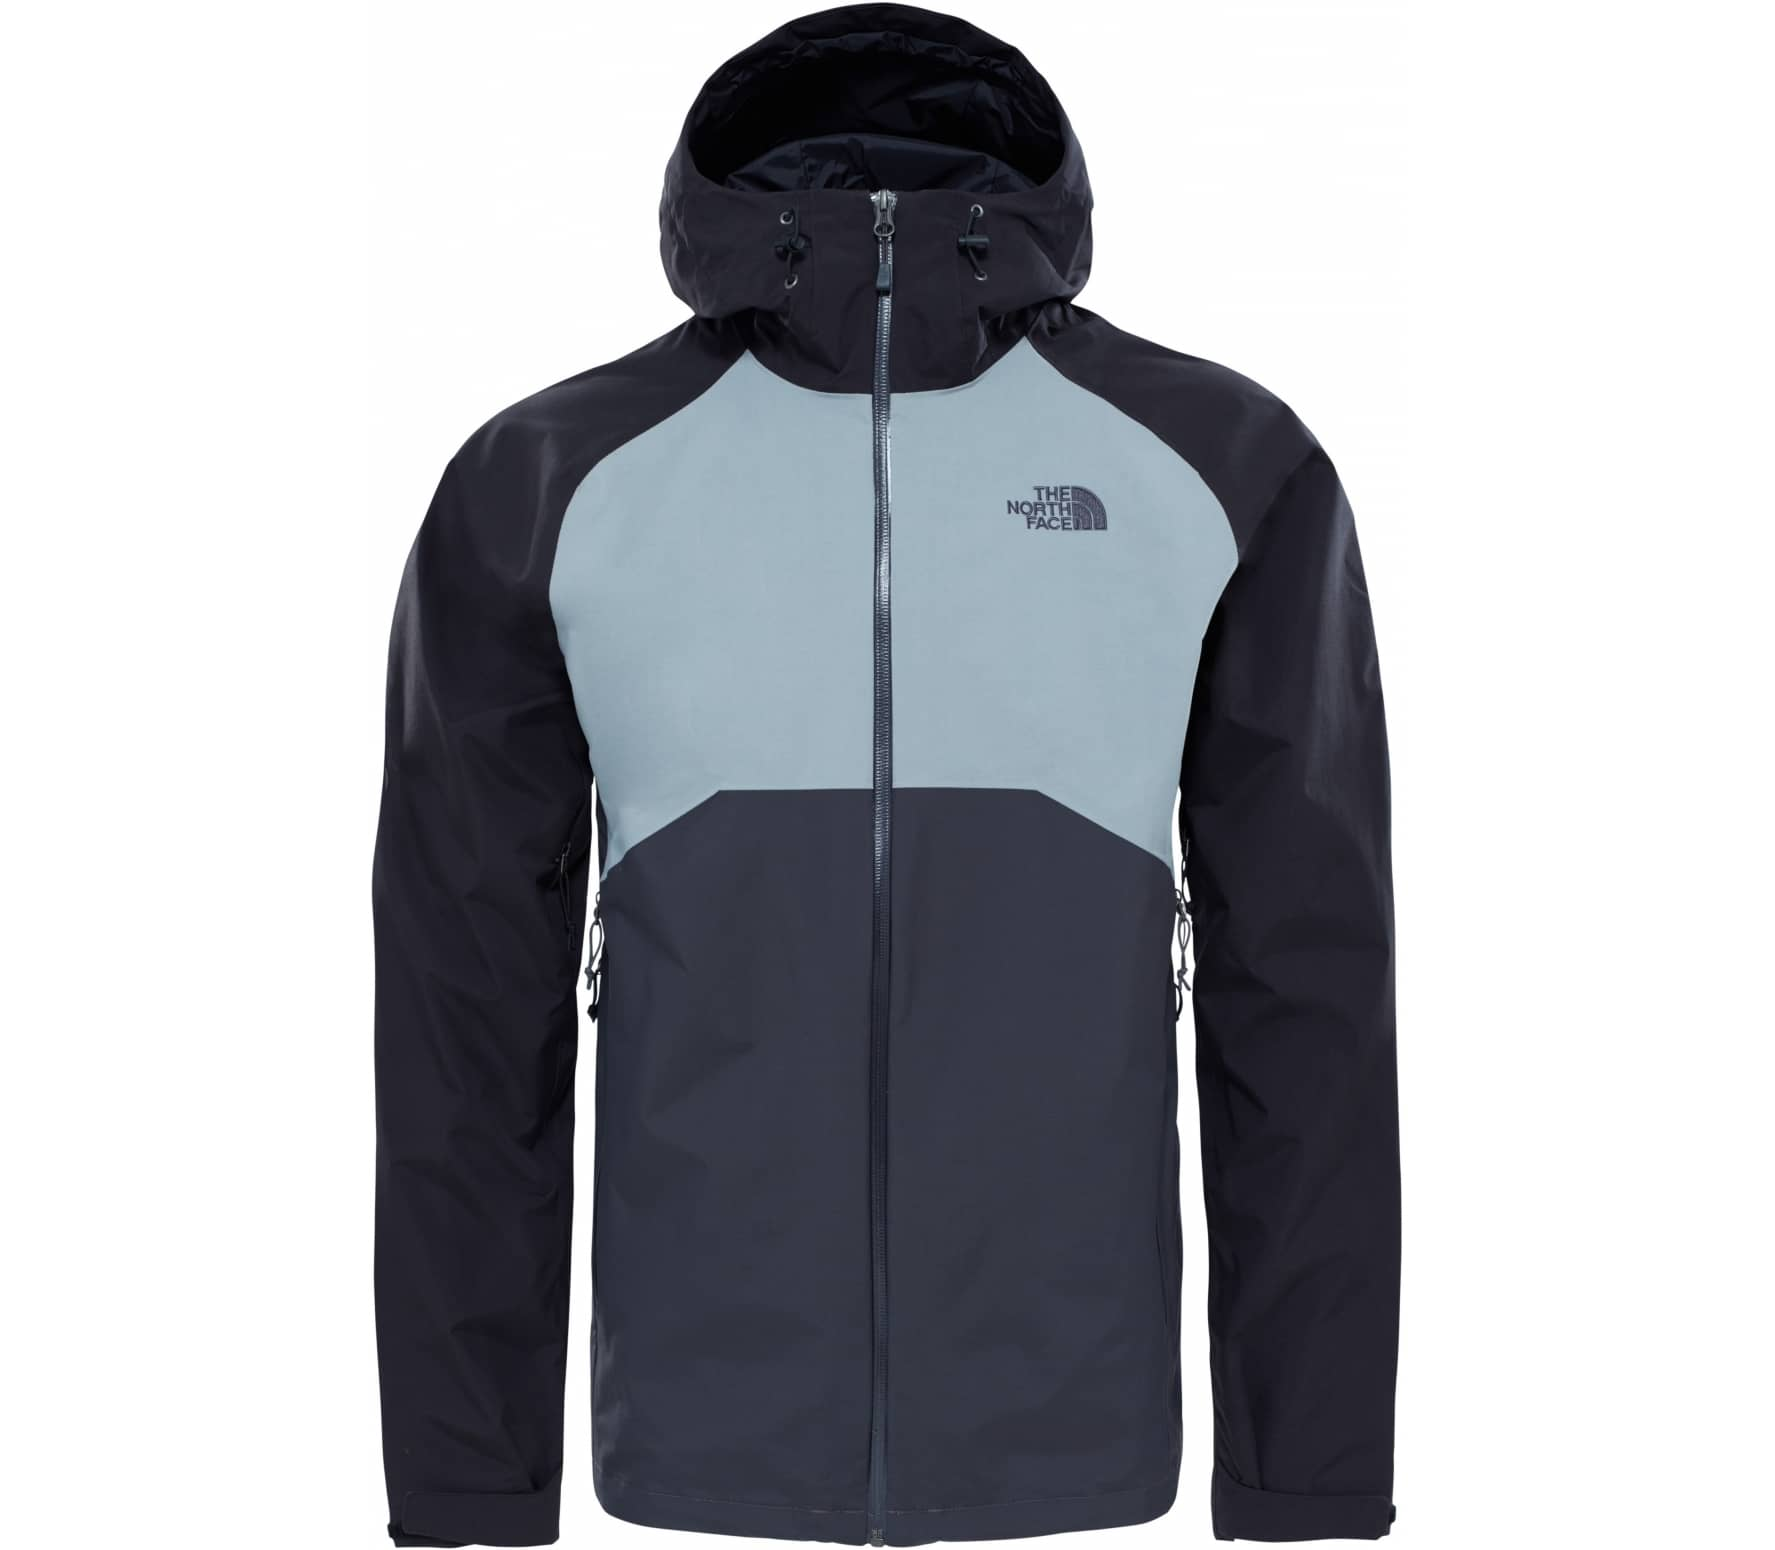 the north face stratos herren regenjacke grau schwarz im online shop von keller sports kaufen. Black Bedroom Furniture Sets. Home Design Ideas